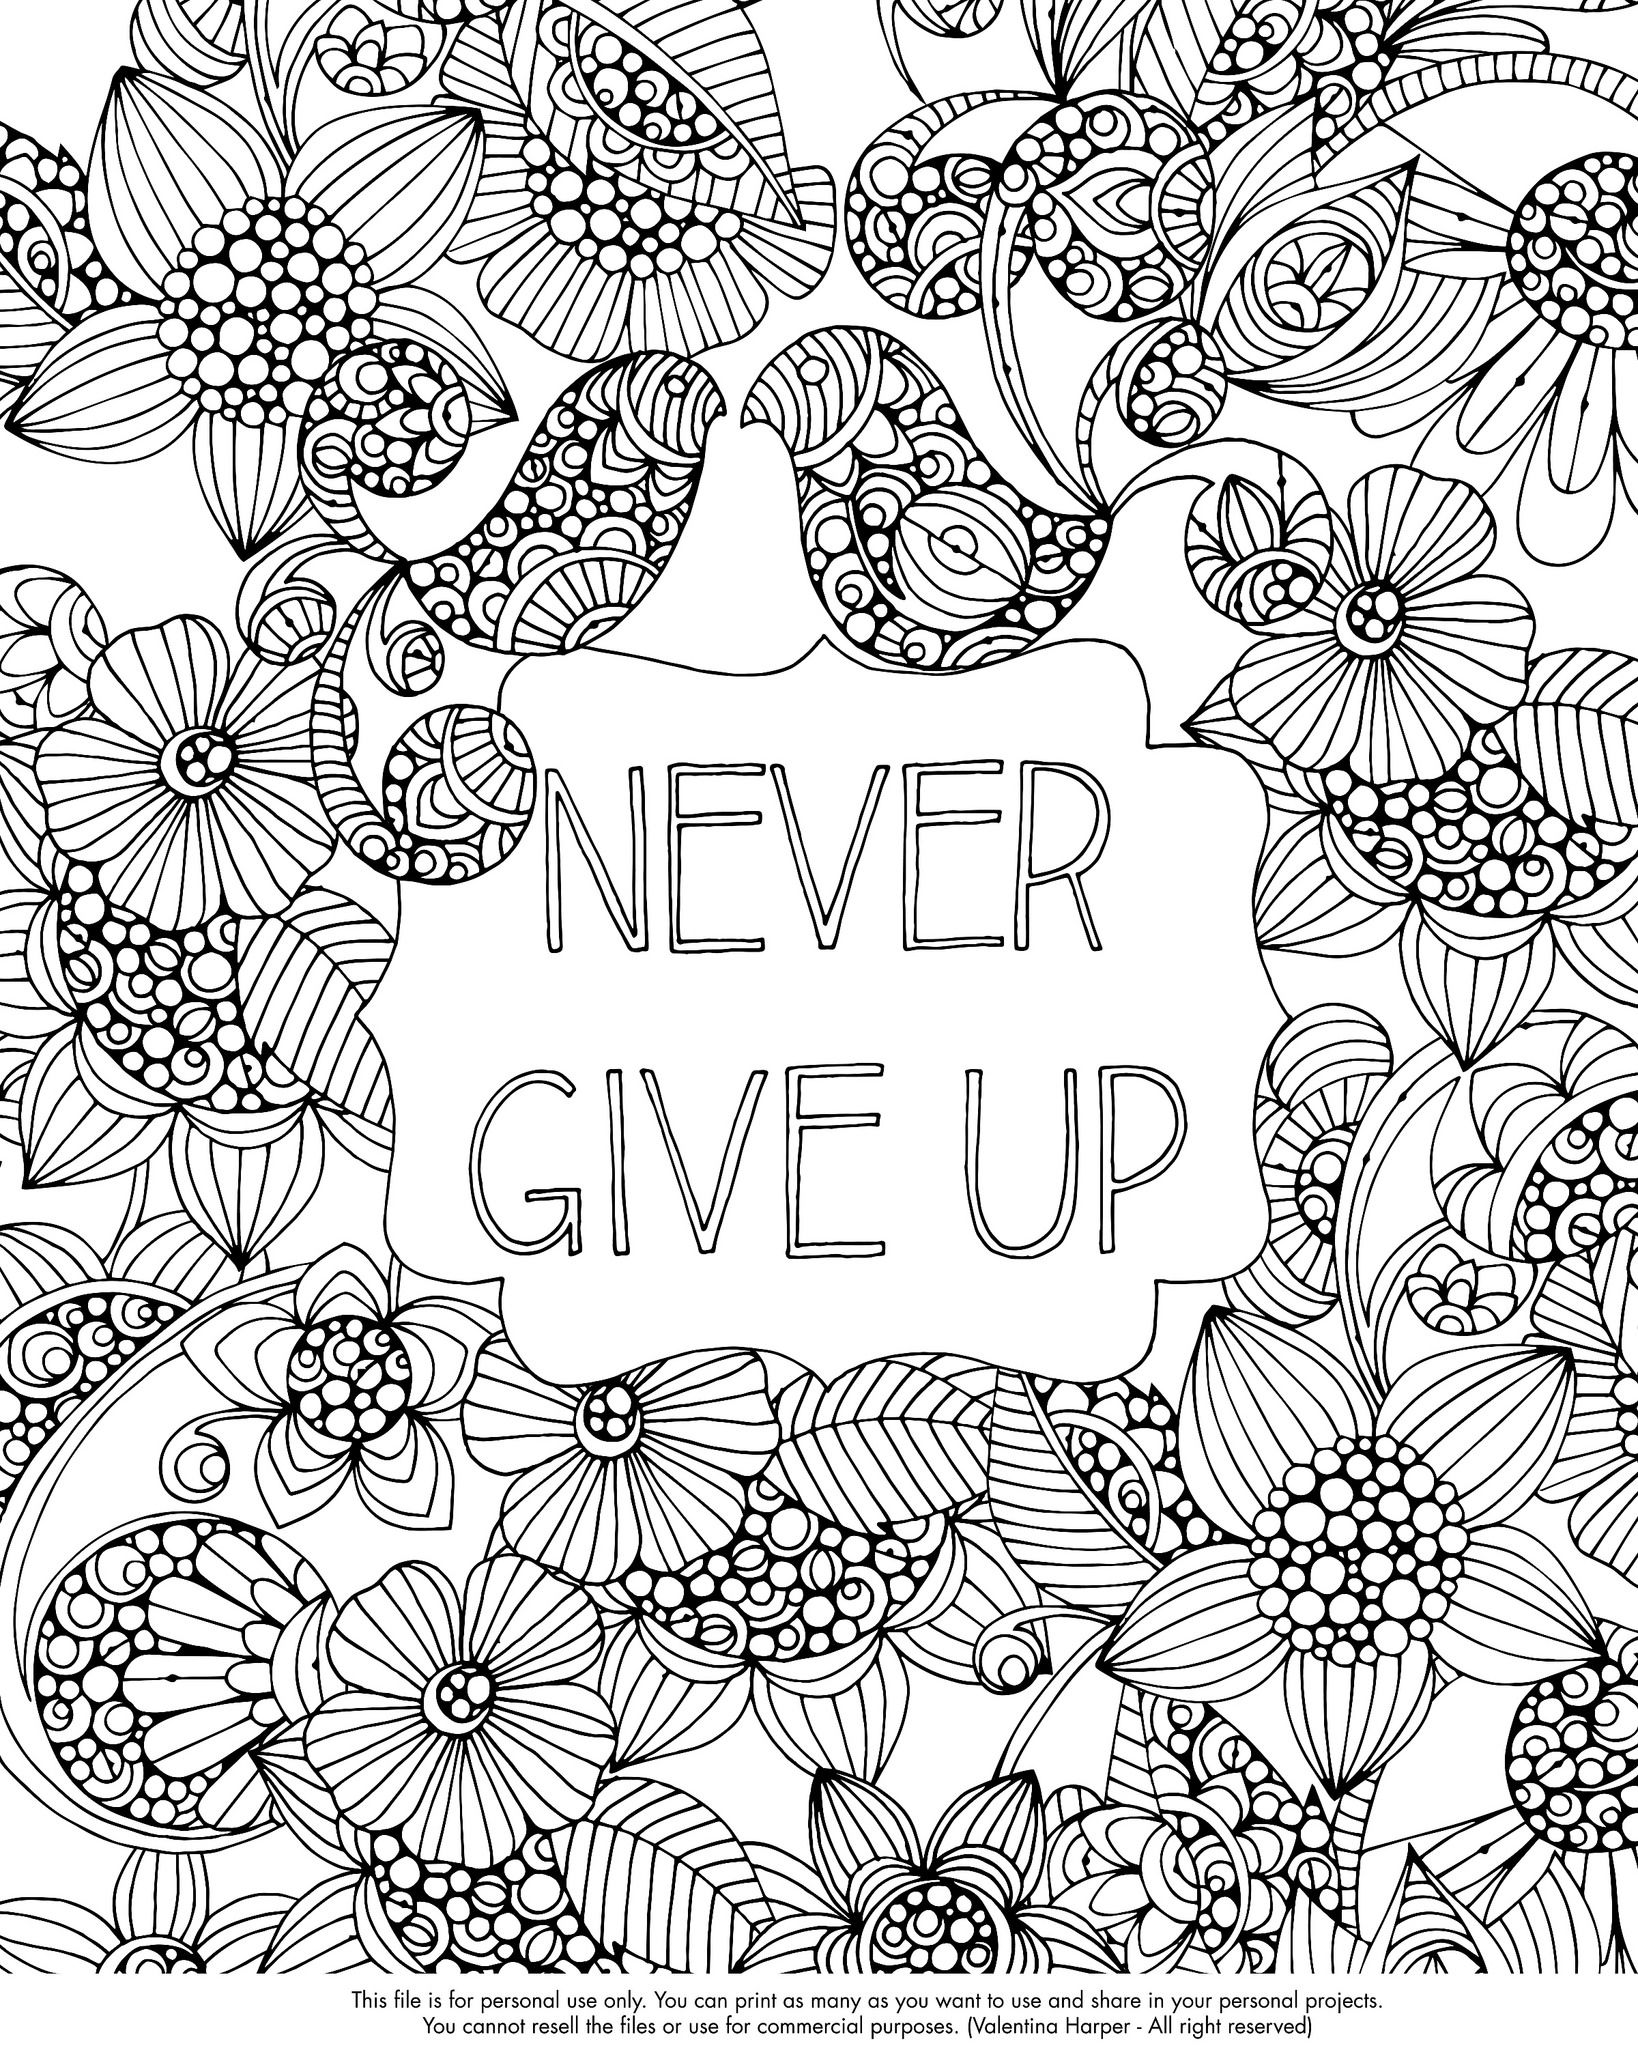 Never Give Up Free Coloring Pages Coloring Pages Inspirational